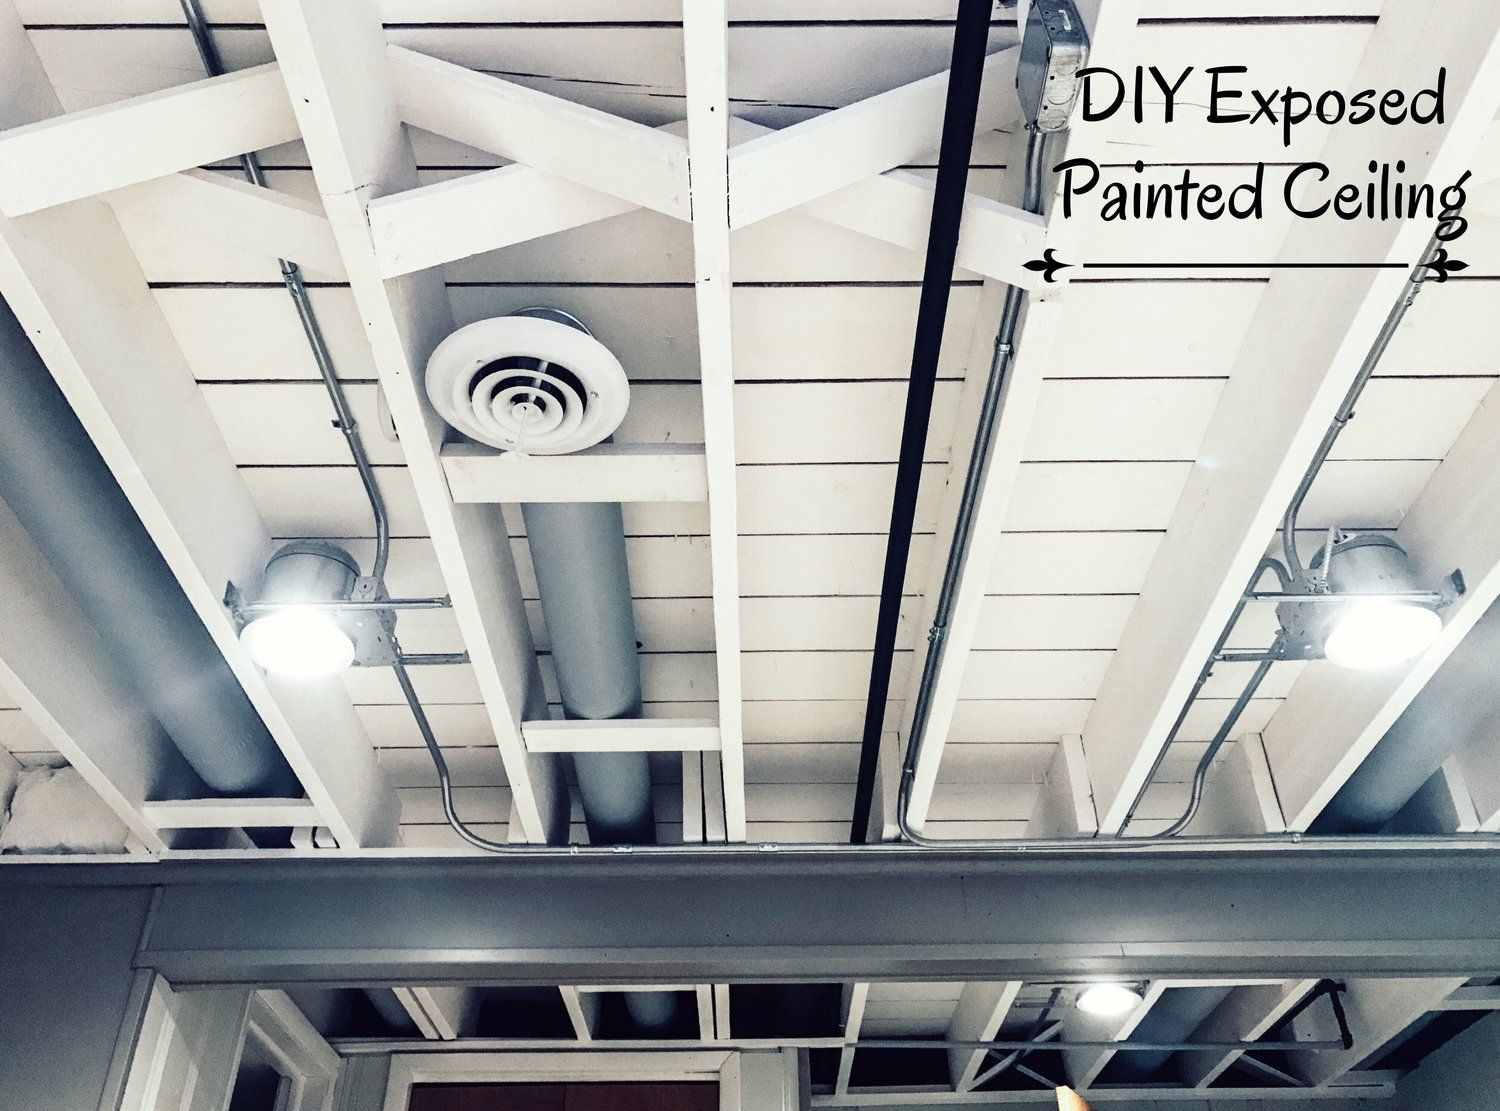 Diy Painted Basement Ceiling Project Basement Ceiling Painted